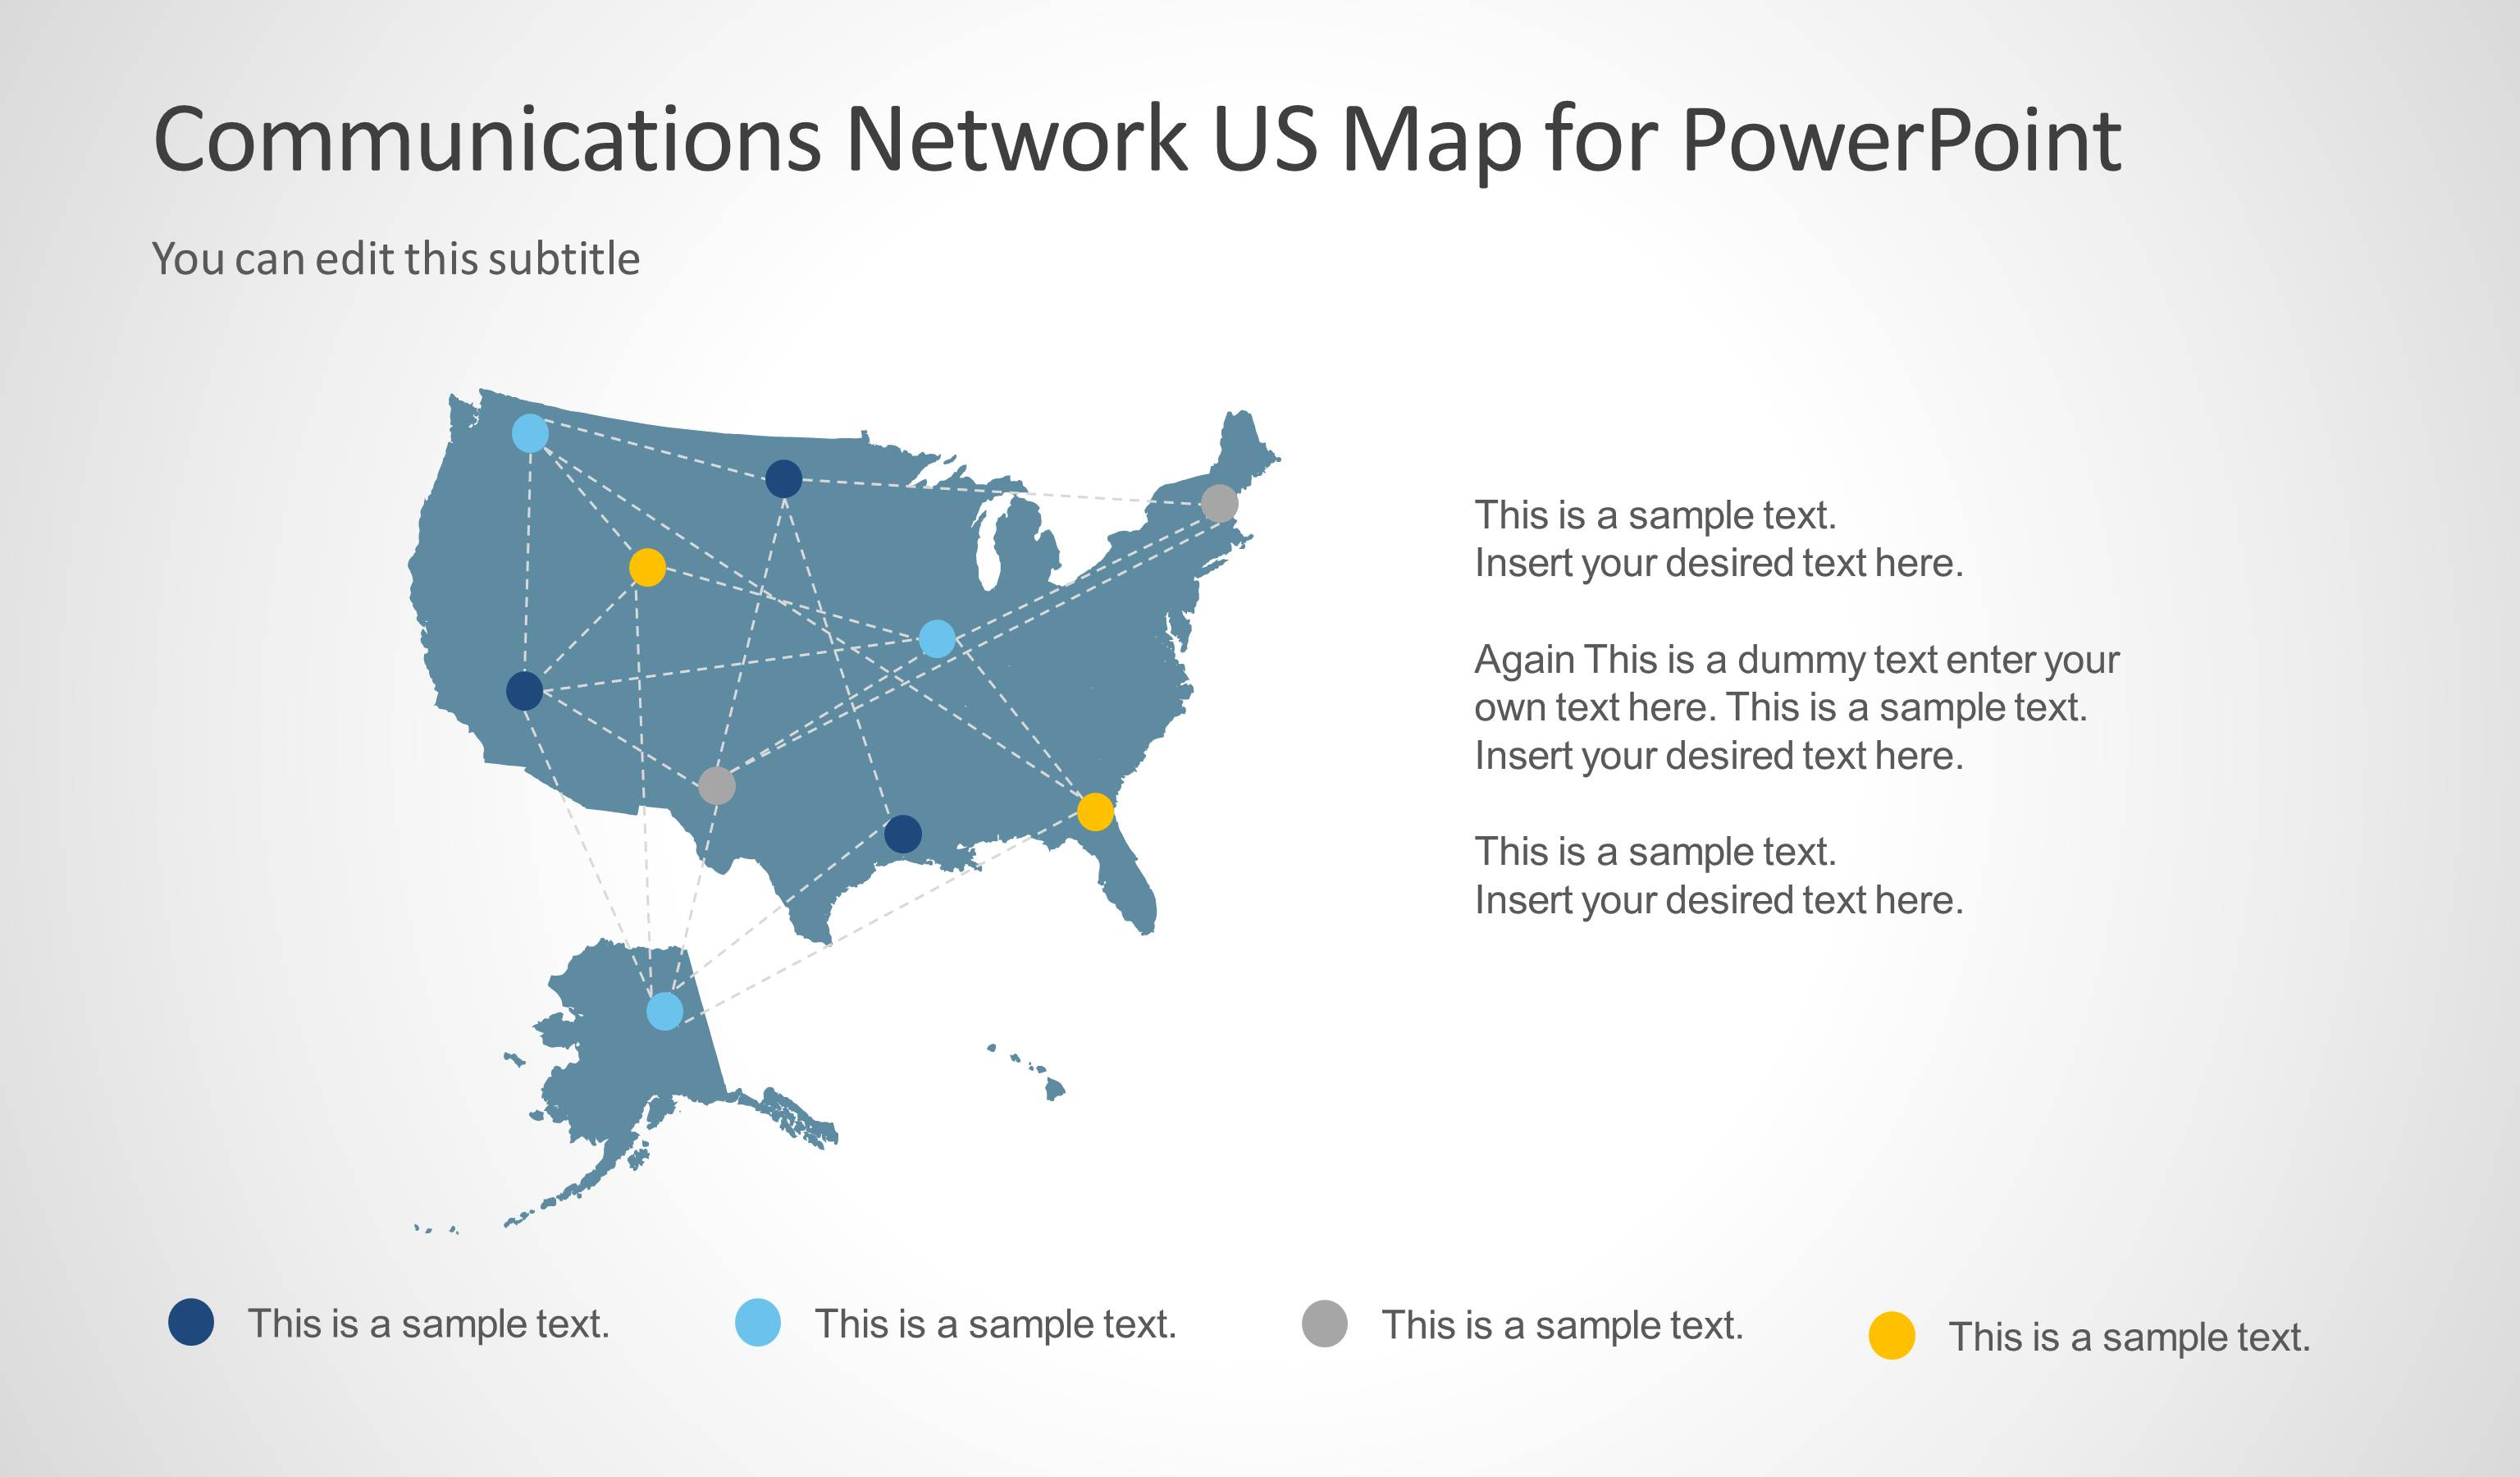 Communications Network Template With US Map For PowerPoint - Us map interactive edit